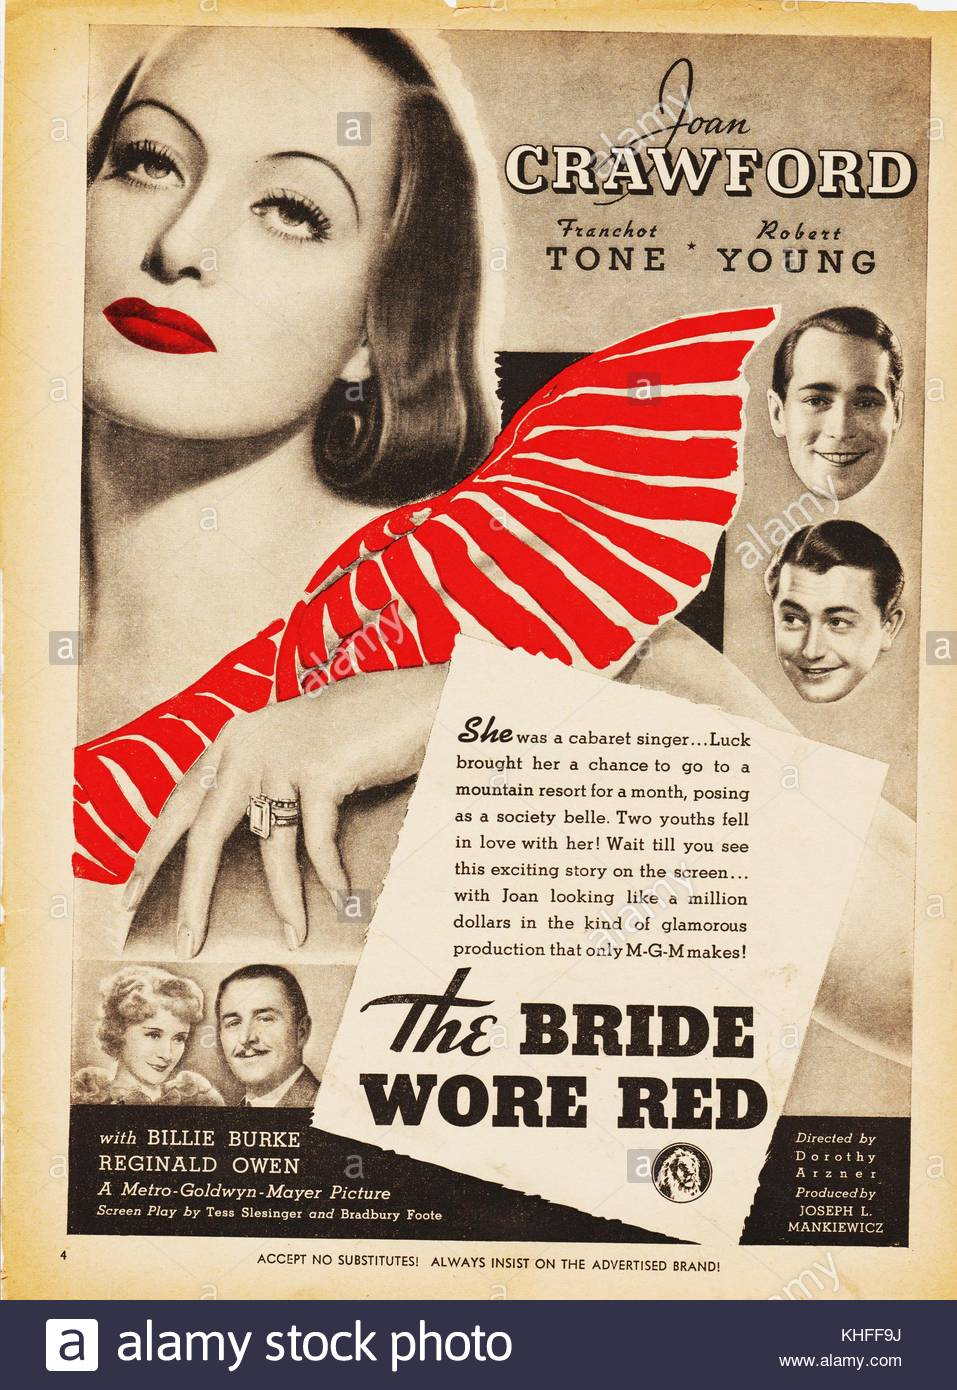 the-bride-wore-red-1937-american-film-wi